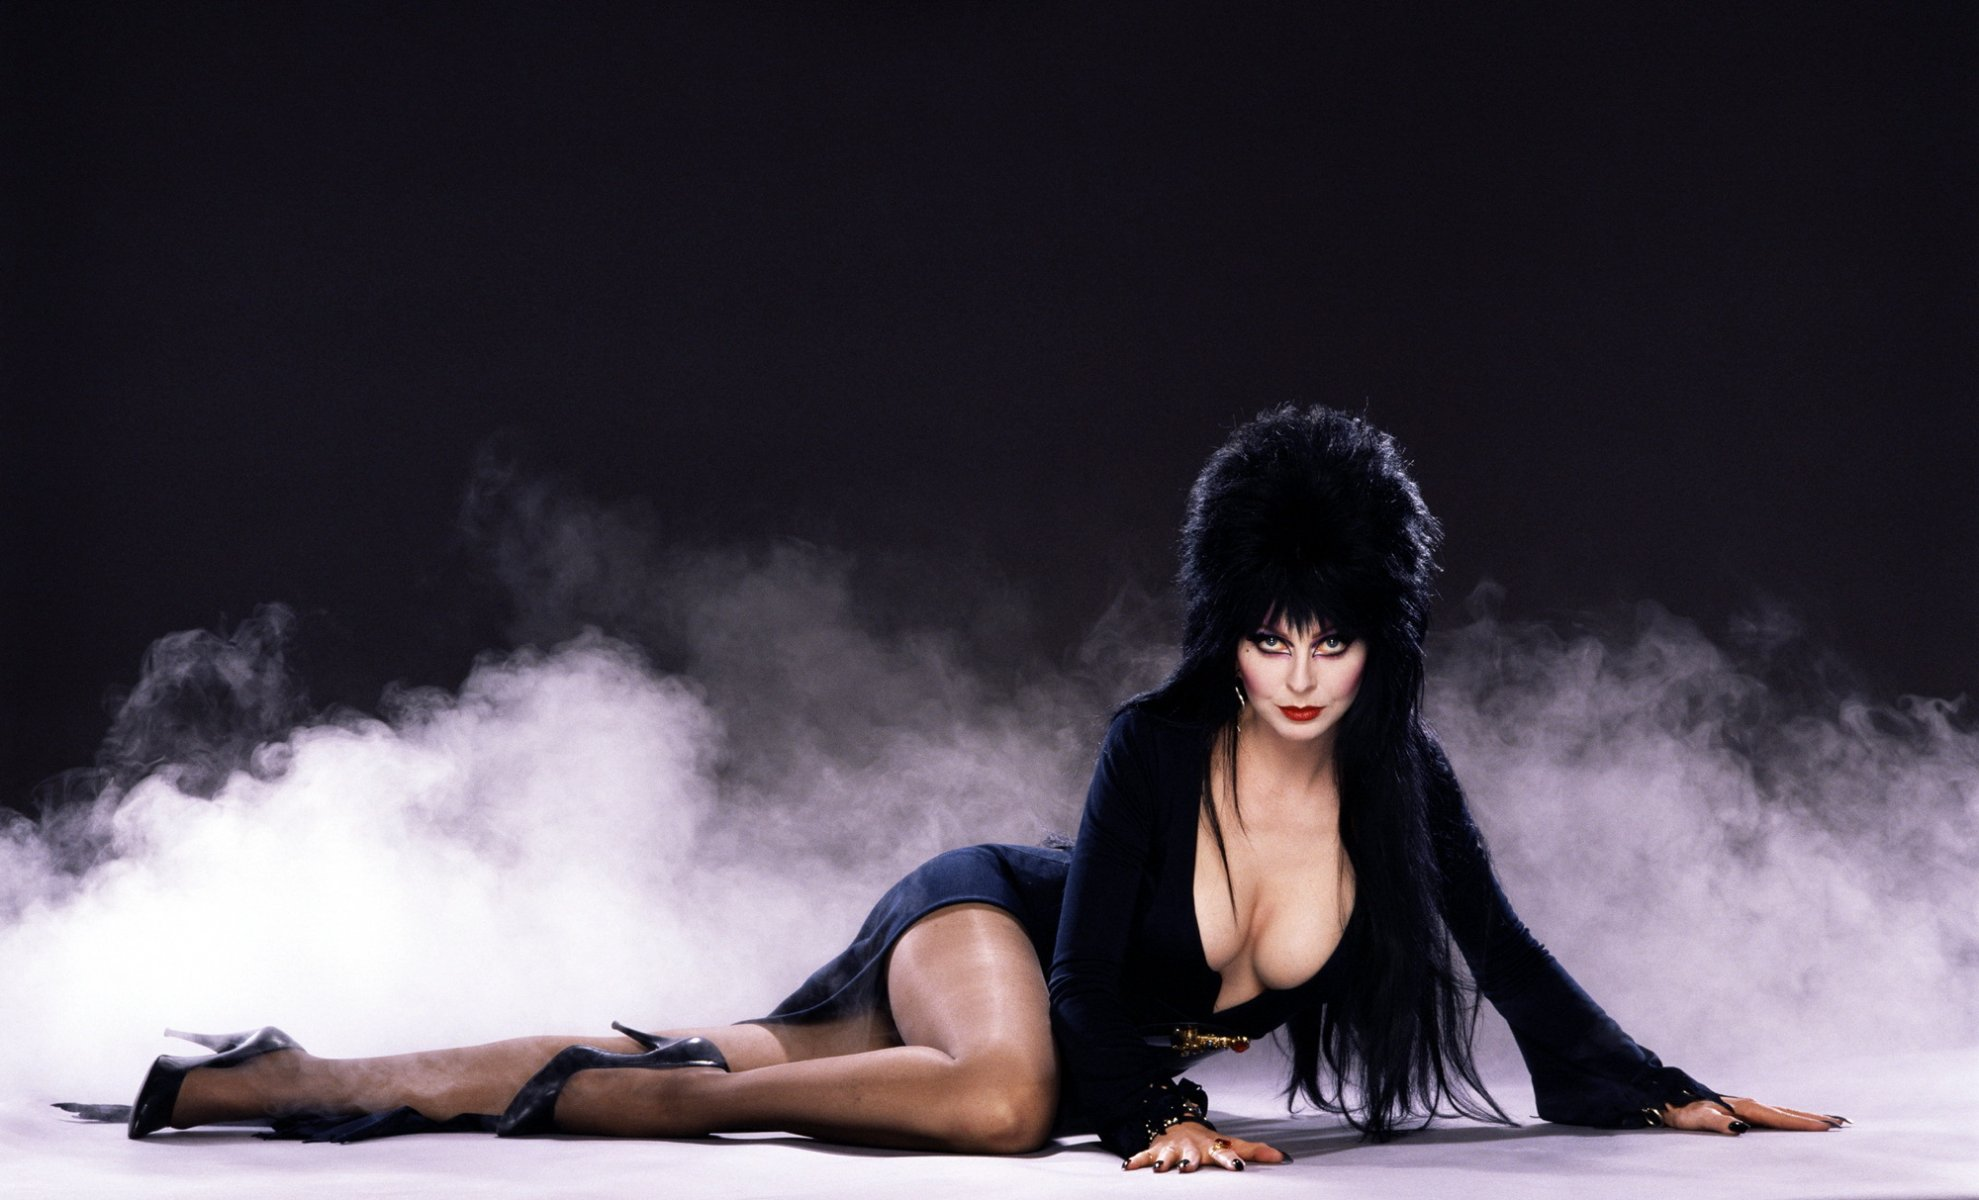 Elvira mistress of the dark pictures — pic 5